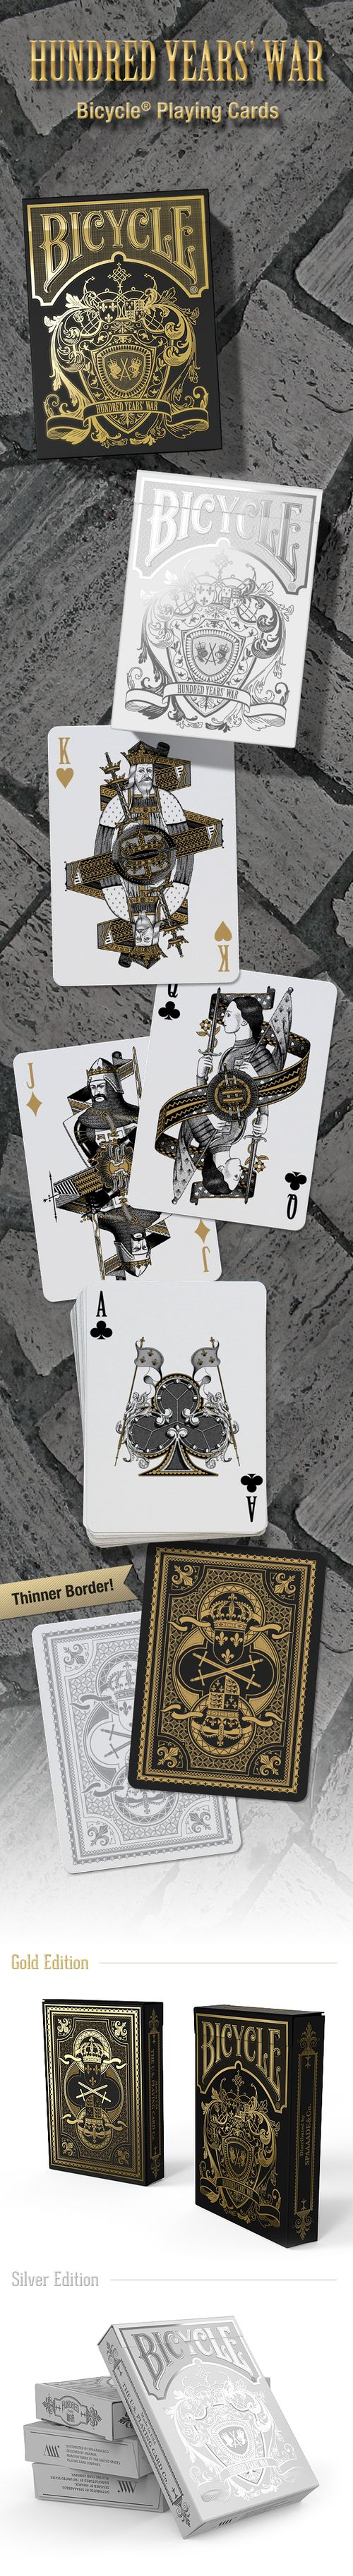 Bicycle Hundred Years' War Playing Cards